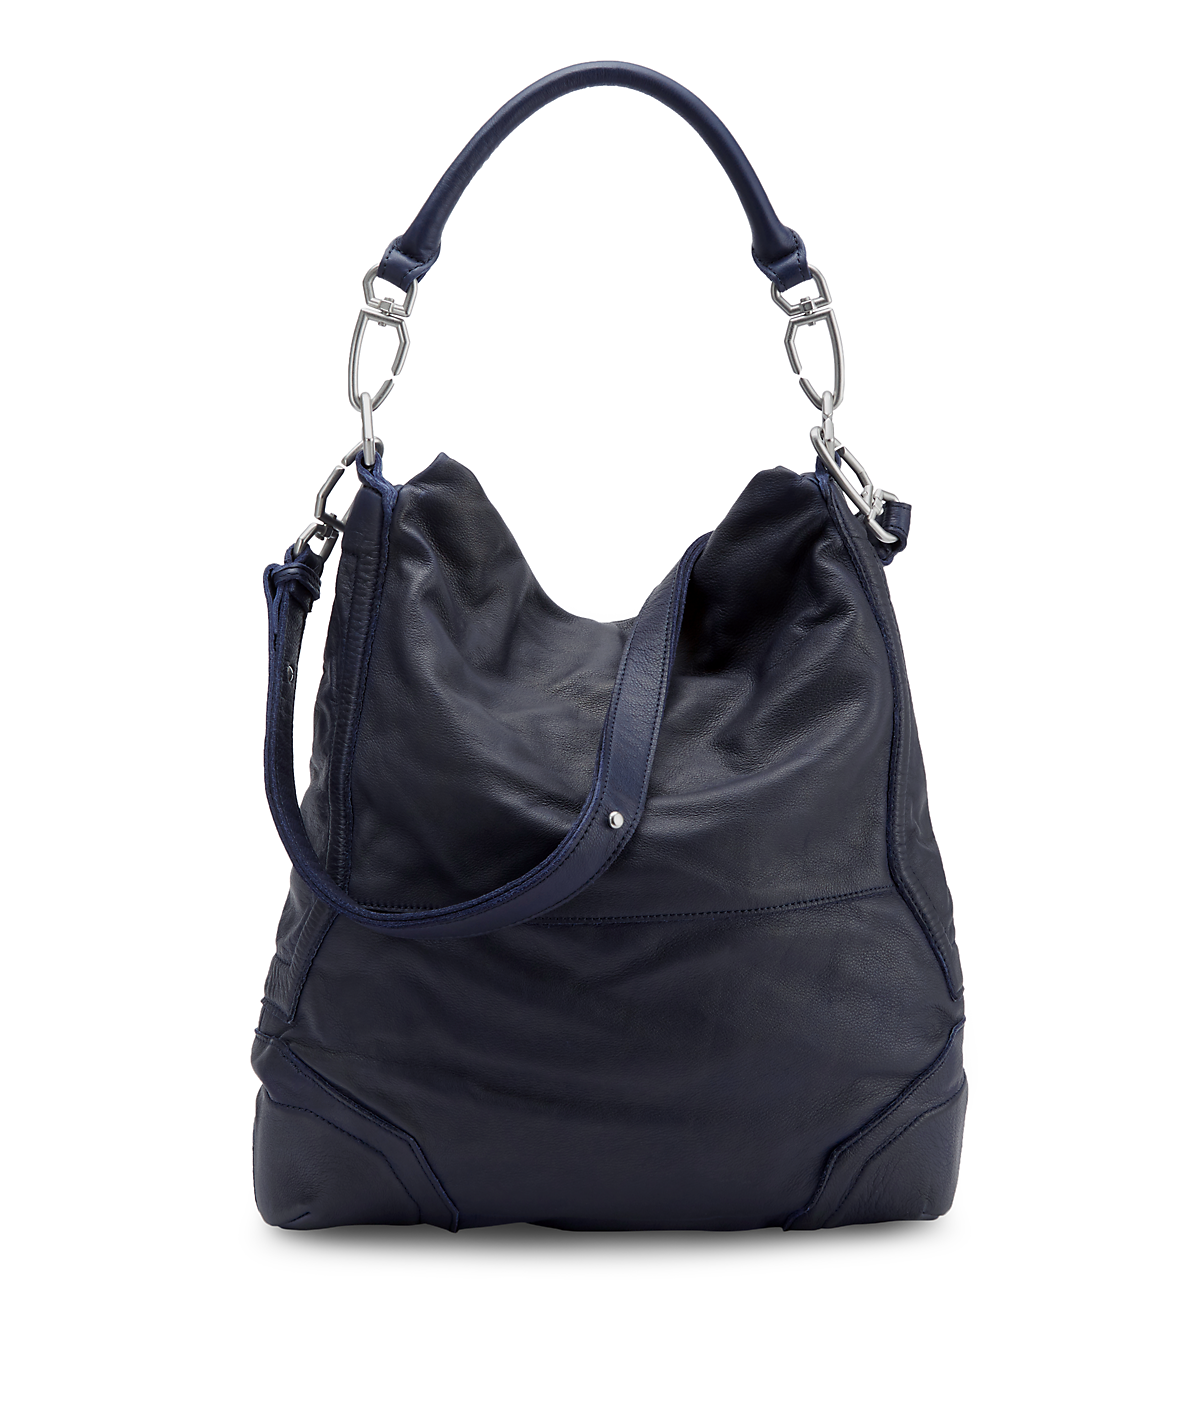 TokioW shoulder bag from liebeskind